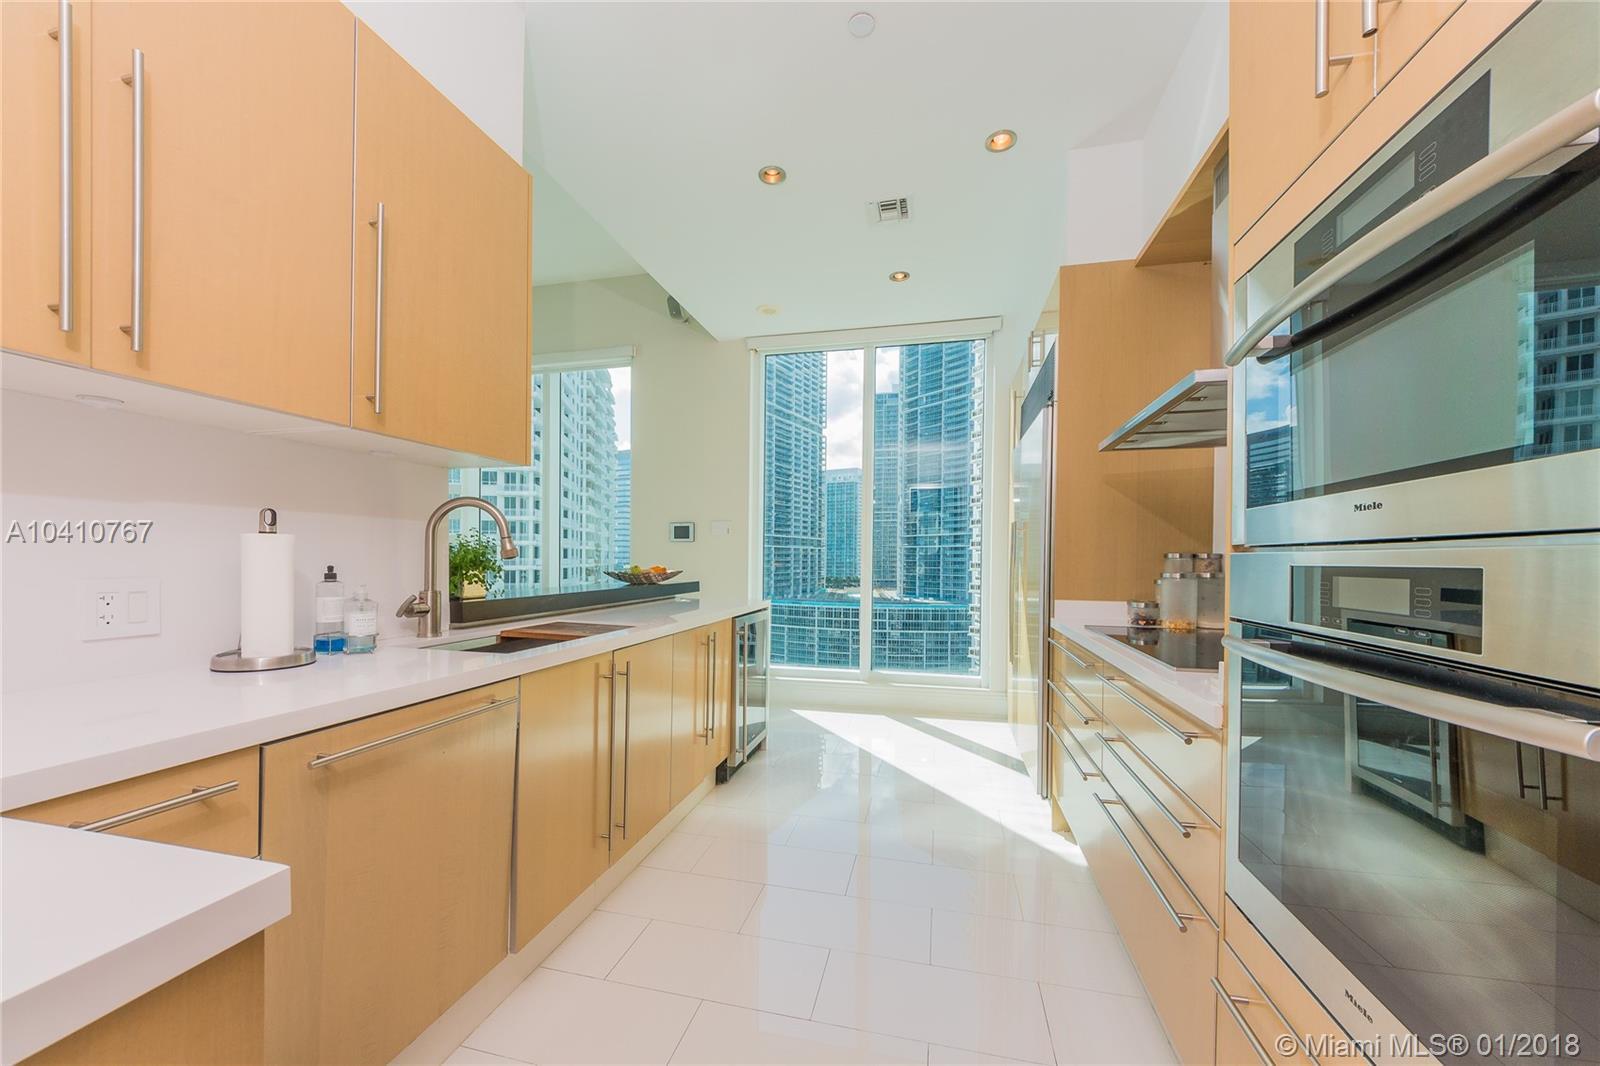 900 Brickell Key Blvd, #1704, Miami, FL, 33131 | RE/MAX Paradise